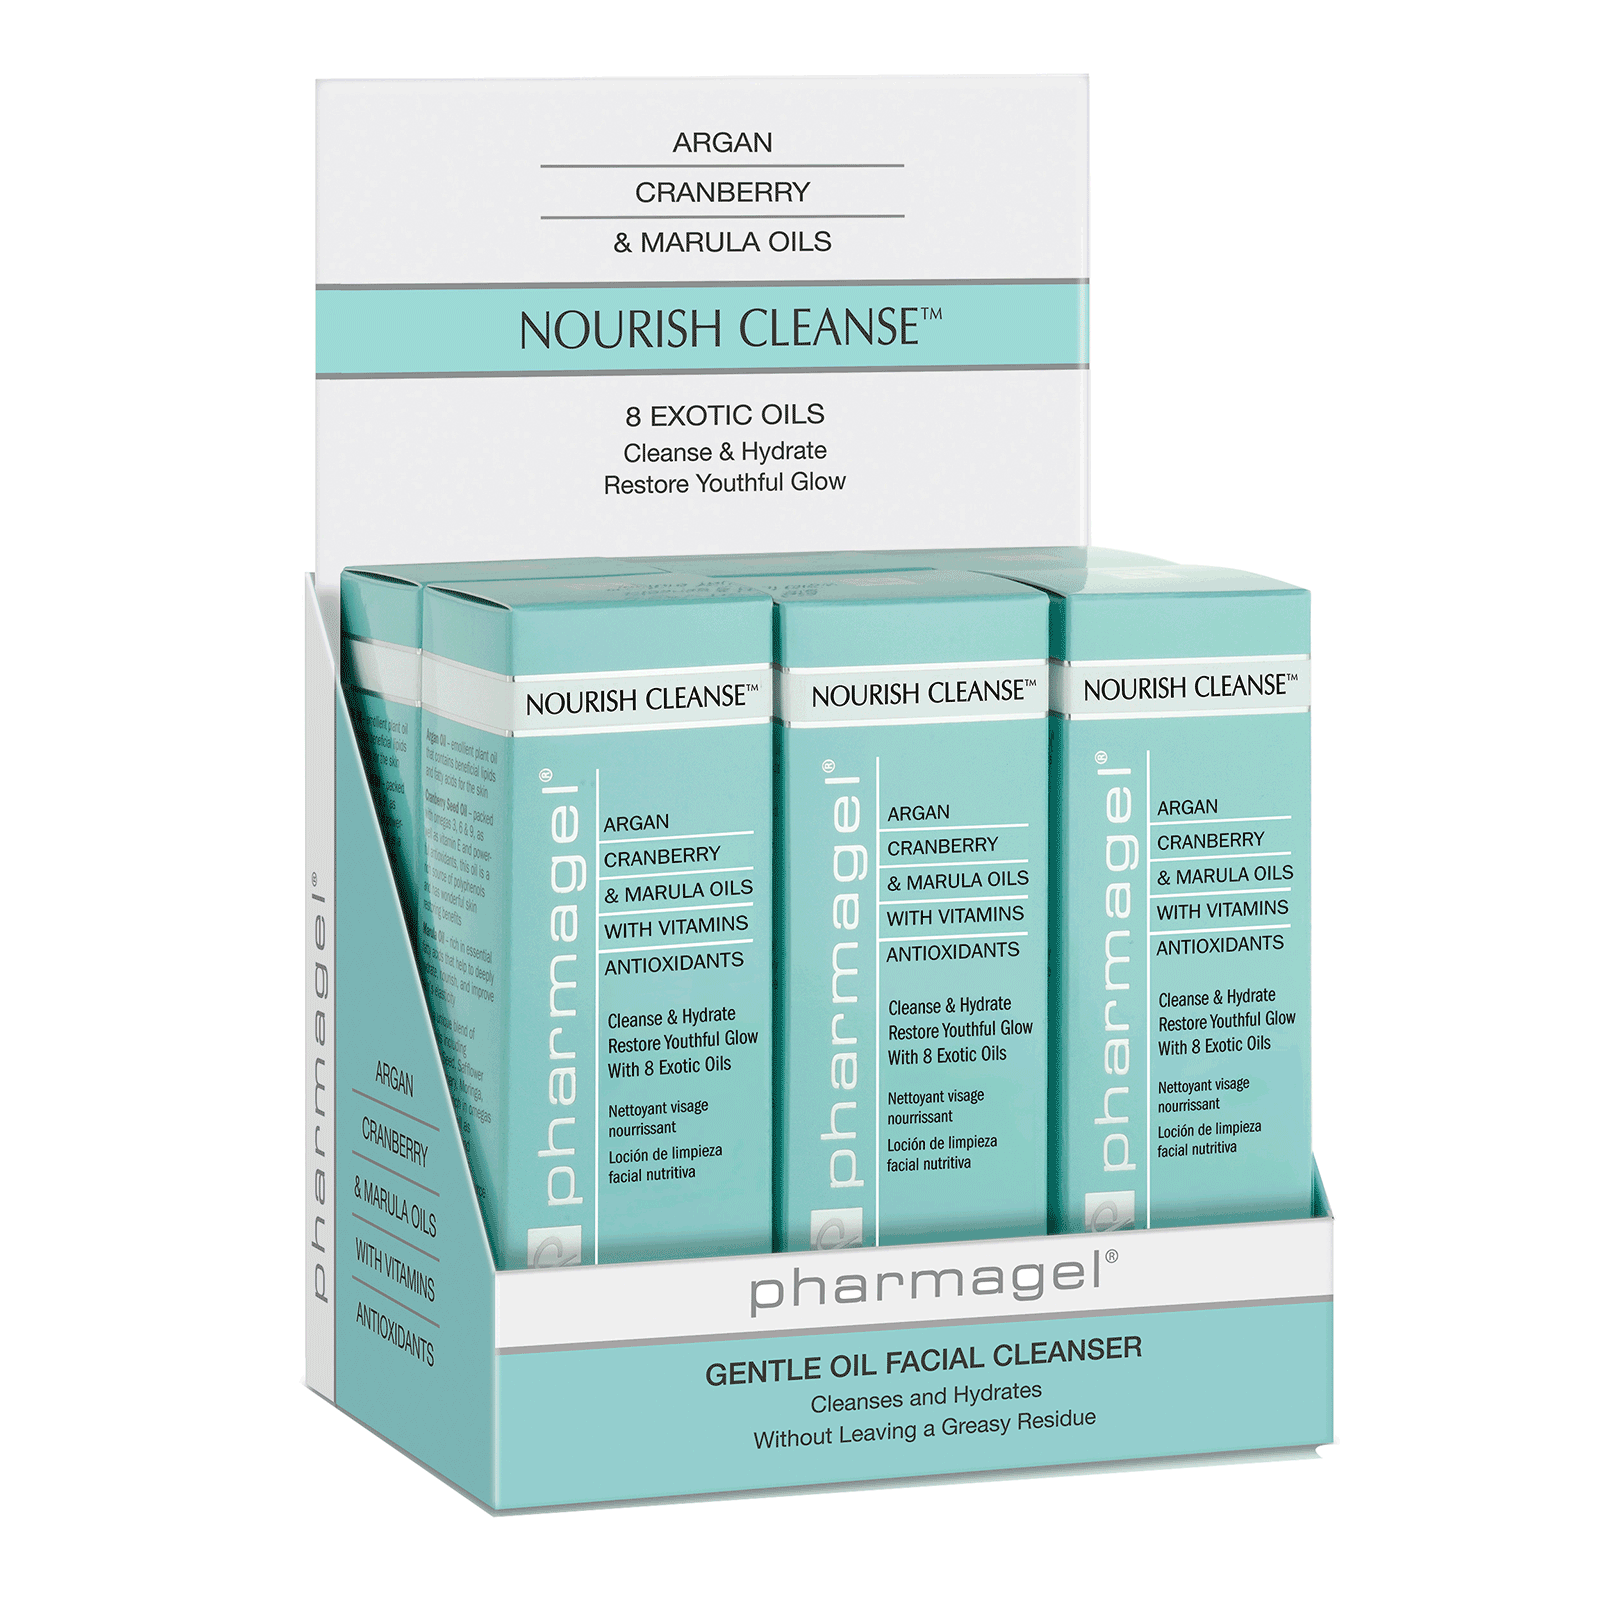 Nourish Cleanse - 6 count display